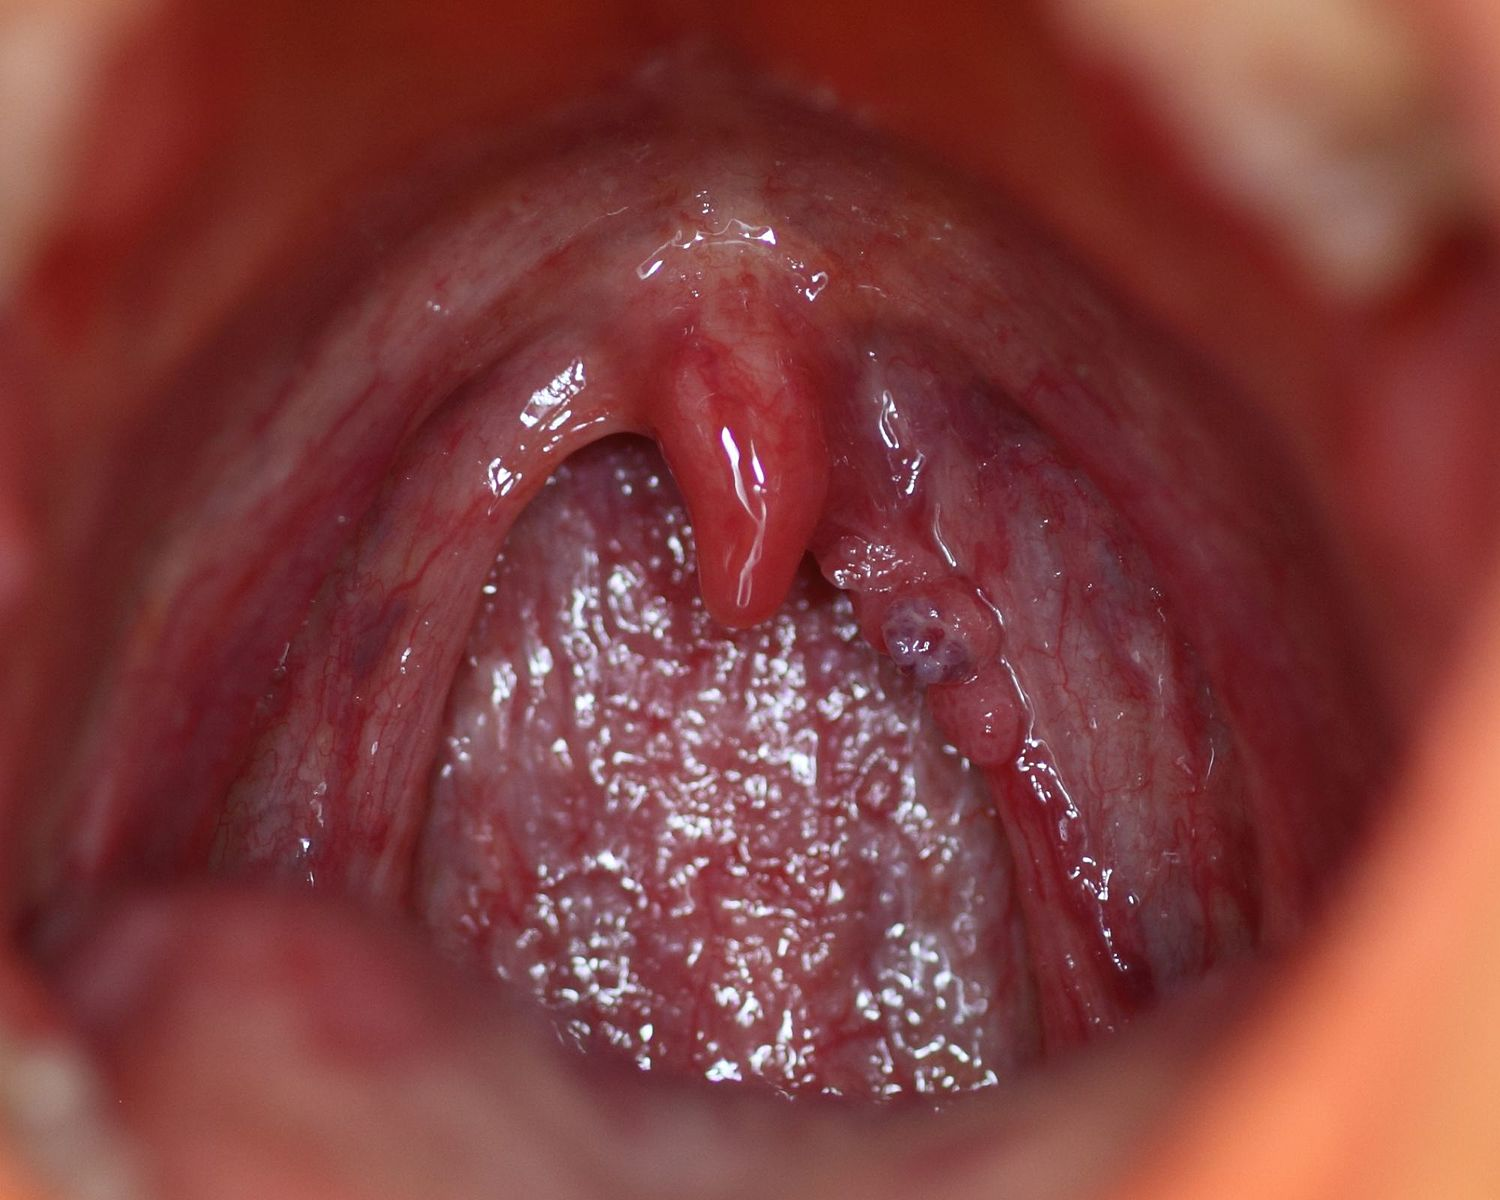 hpv virus symptoms in throat